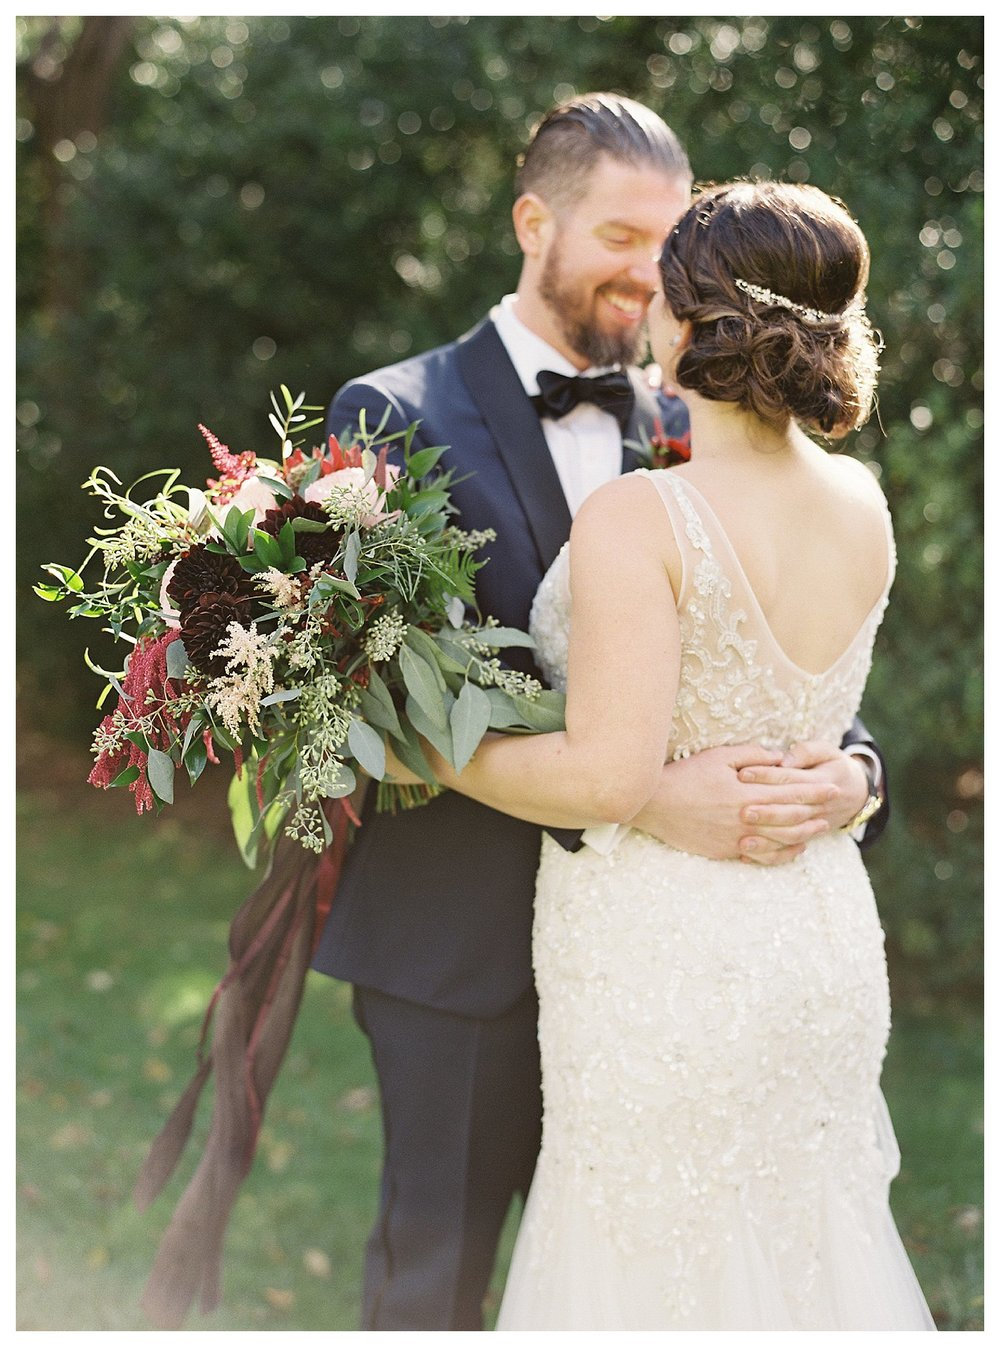 Our Wedding & First Anniversary | Leesburg, Virginia | Andrea Rodway Photography